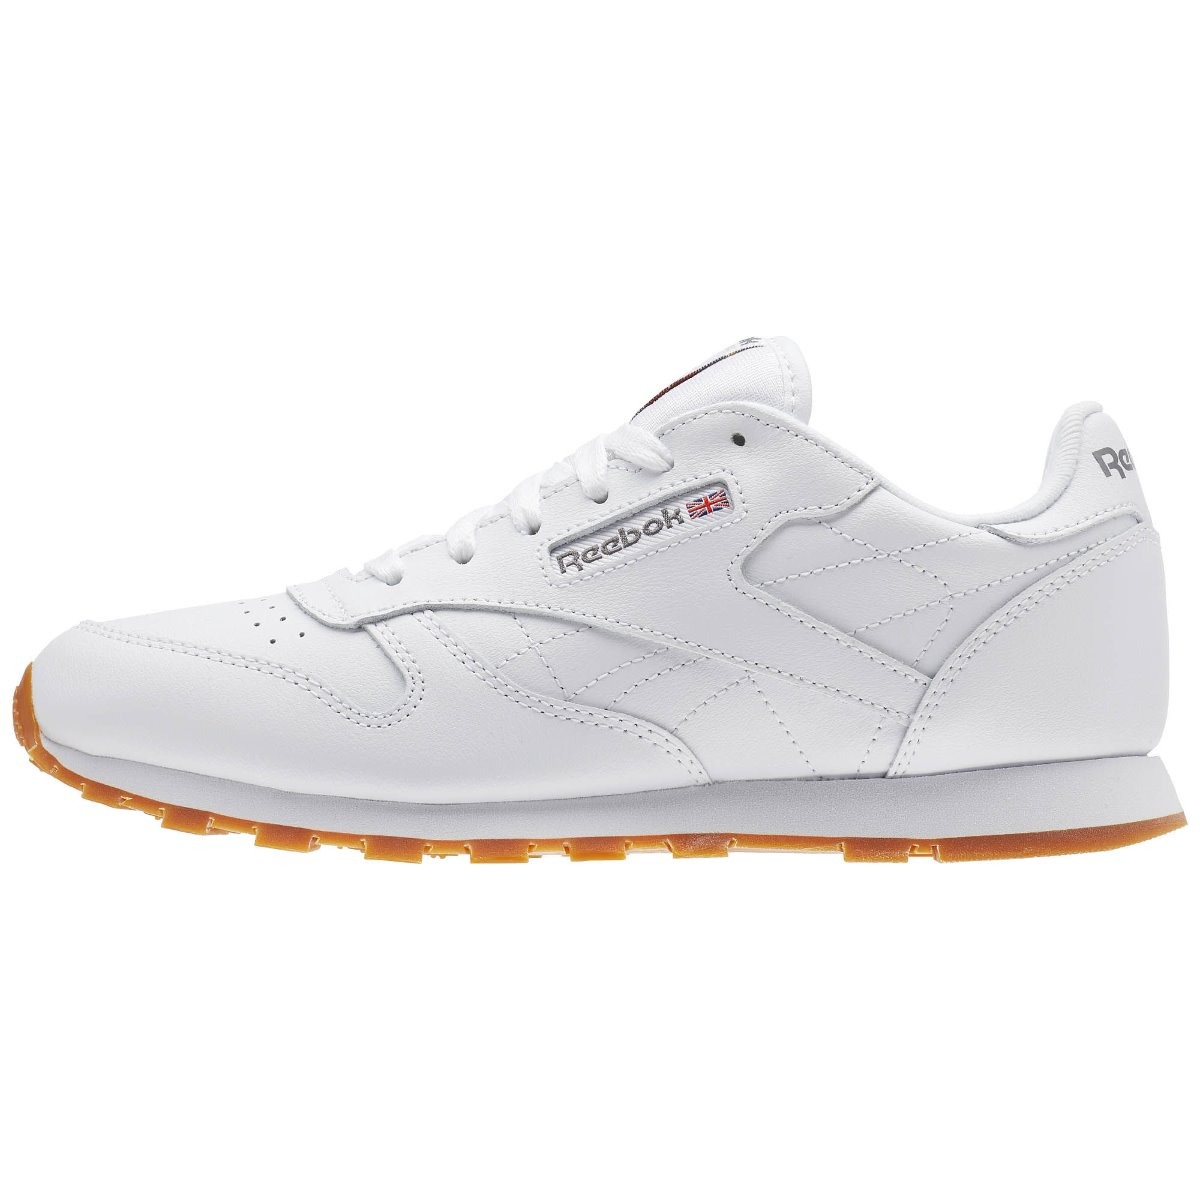 3f0ff35df9428 Tenis Reebok Classic Leather Branco 34 35 36 37 Original - R  299